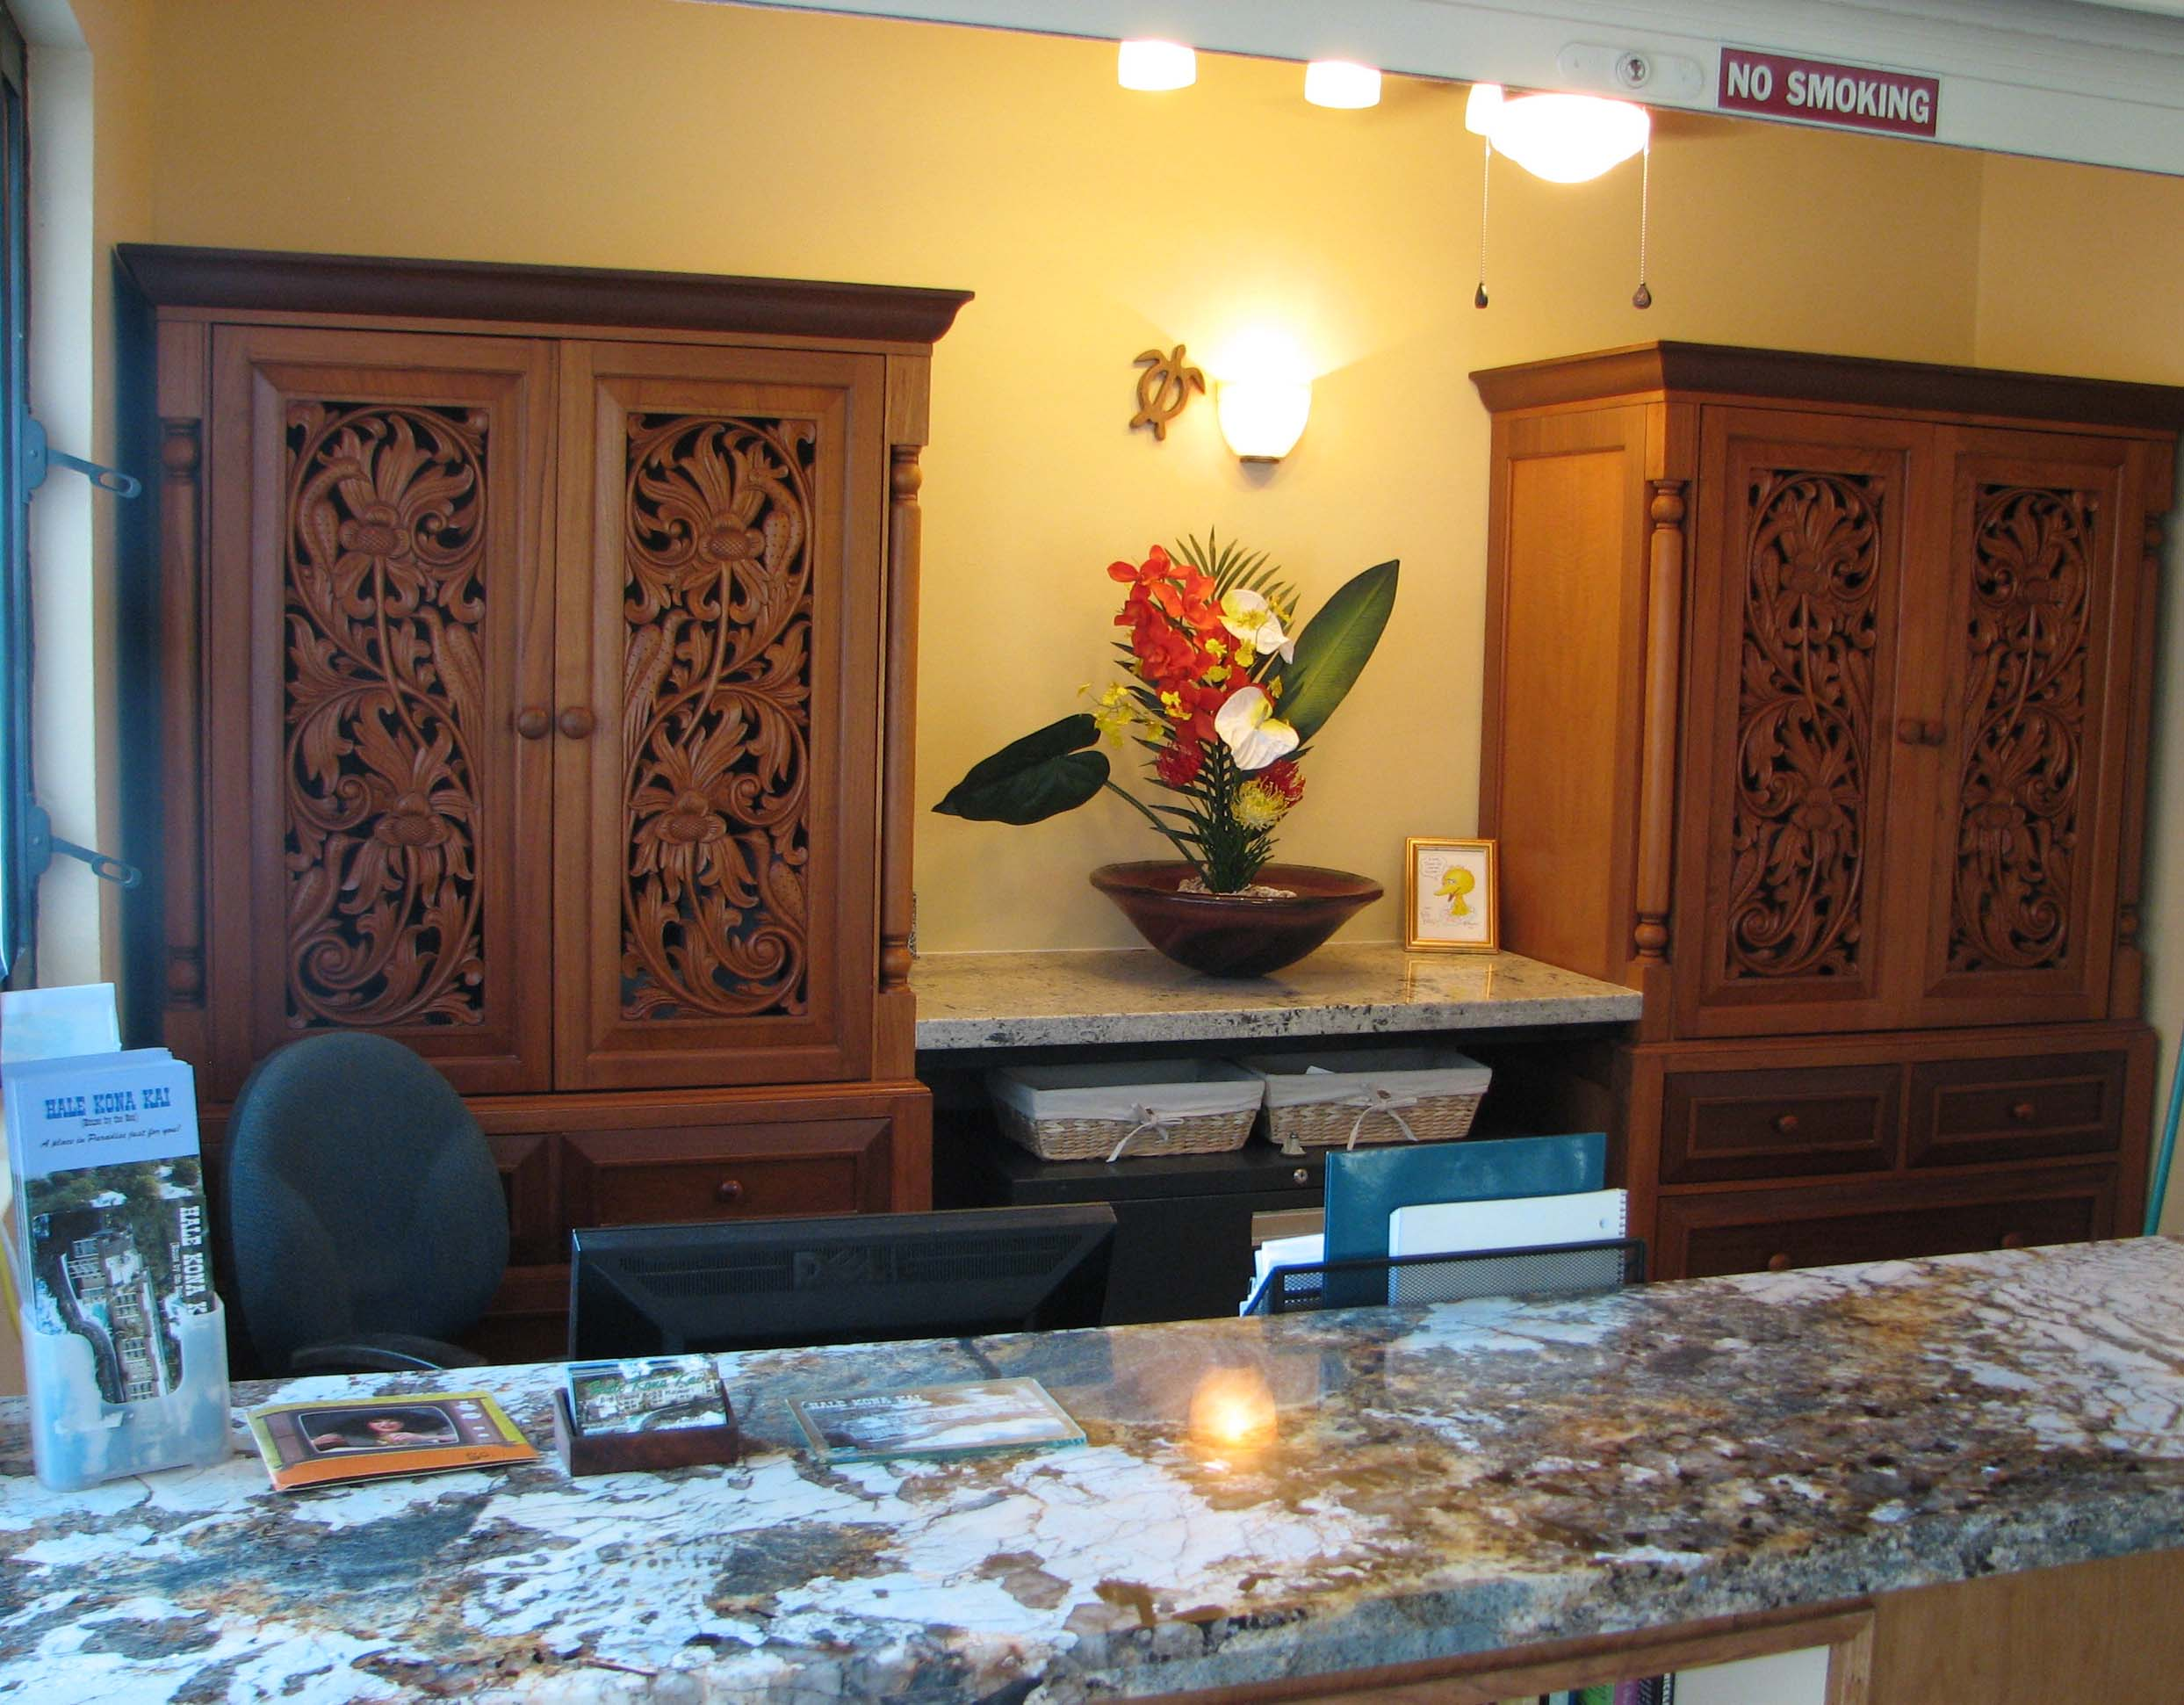 Kona Now Hawaii Rentals office at Hale Kona Kai.. Books, ticket printing, hand outs... We look forward to sharing our aloha with you!!!